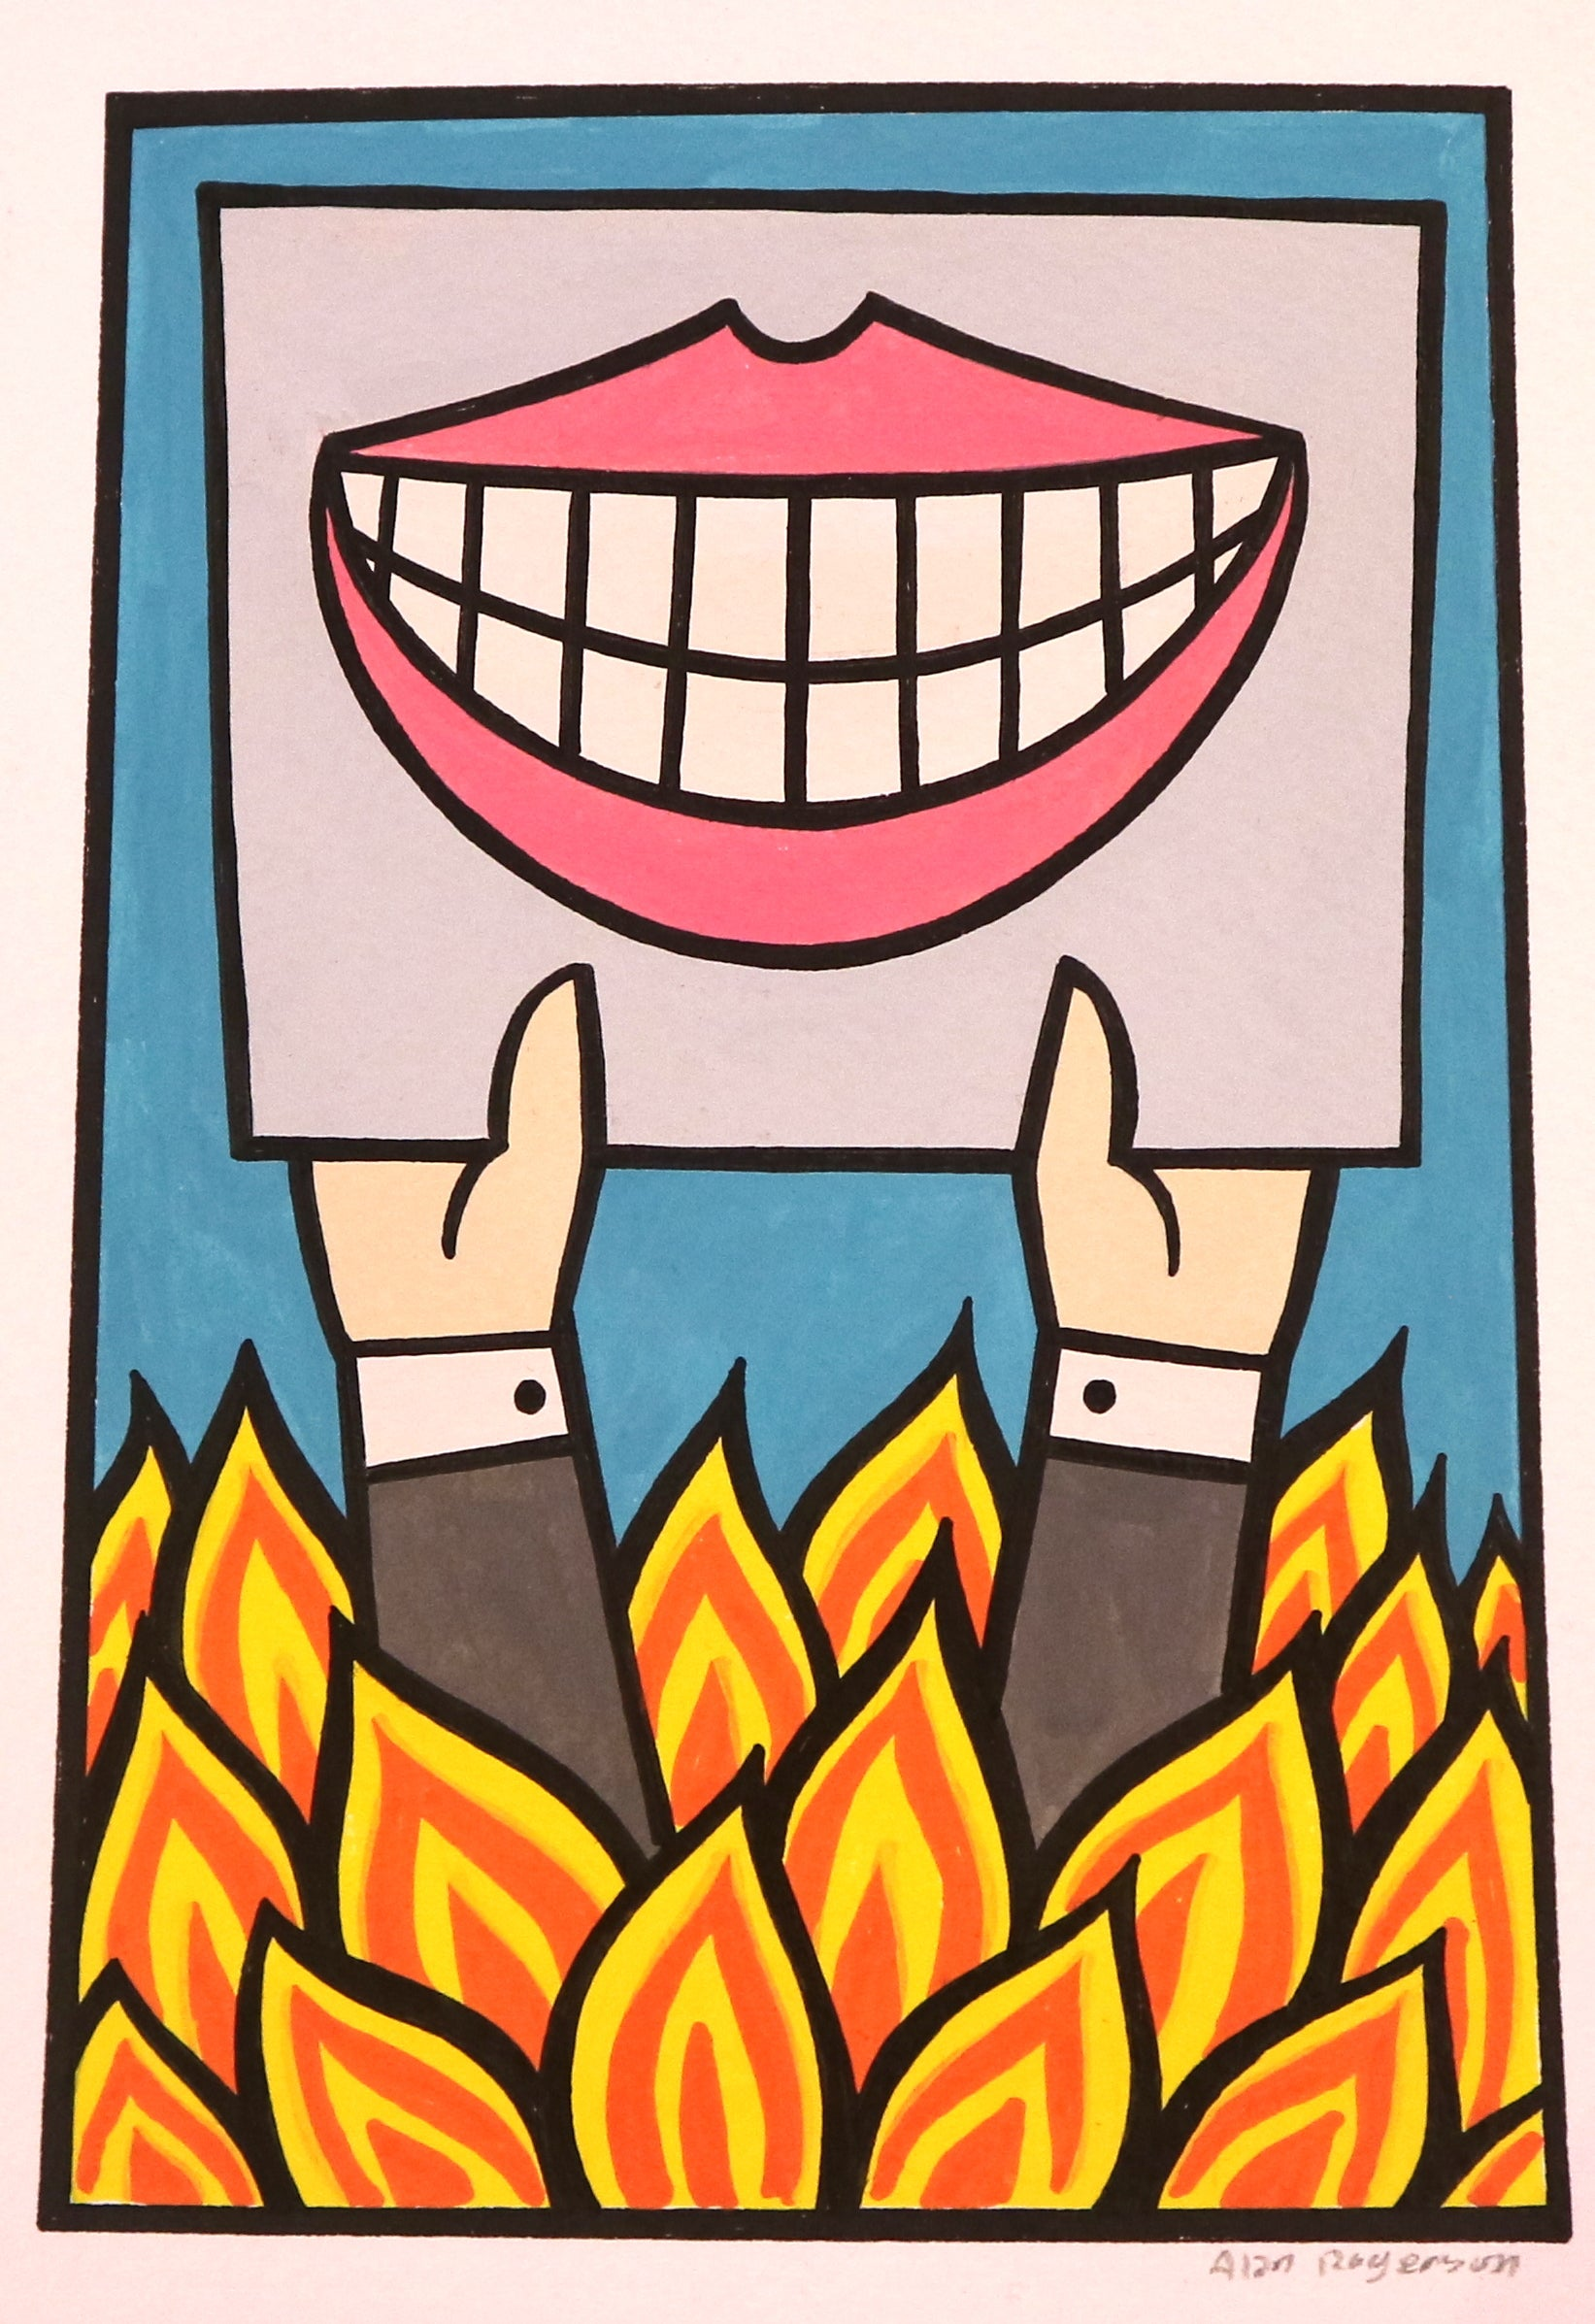 Alan Rogerson - Untitled mini painting 1 (Smile)